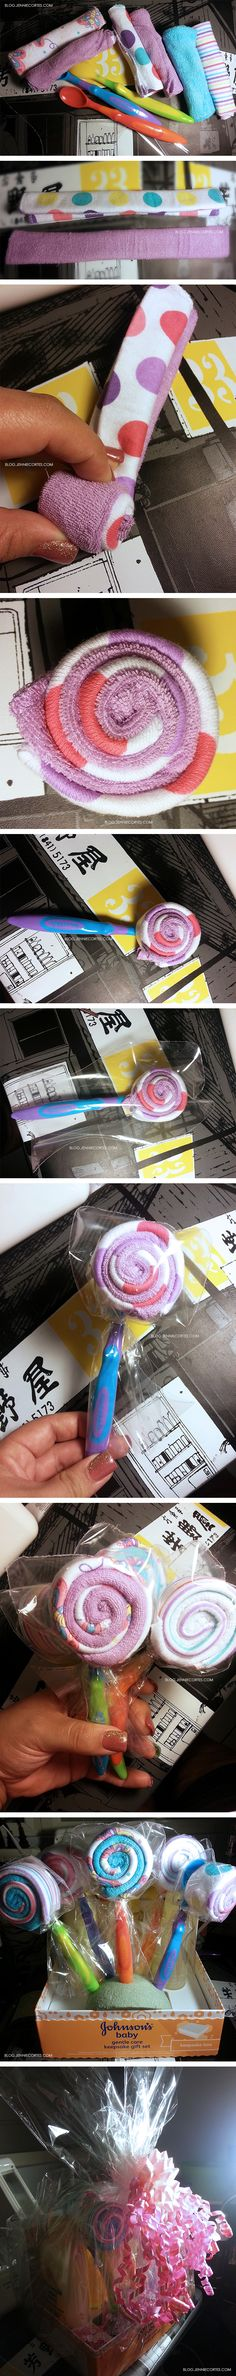 DIY: Baby shower gift wrapping idea. Making a lollypop out of washcloths and baby spoon. Very easy to do! :)